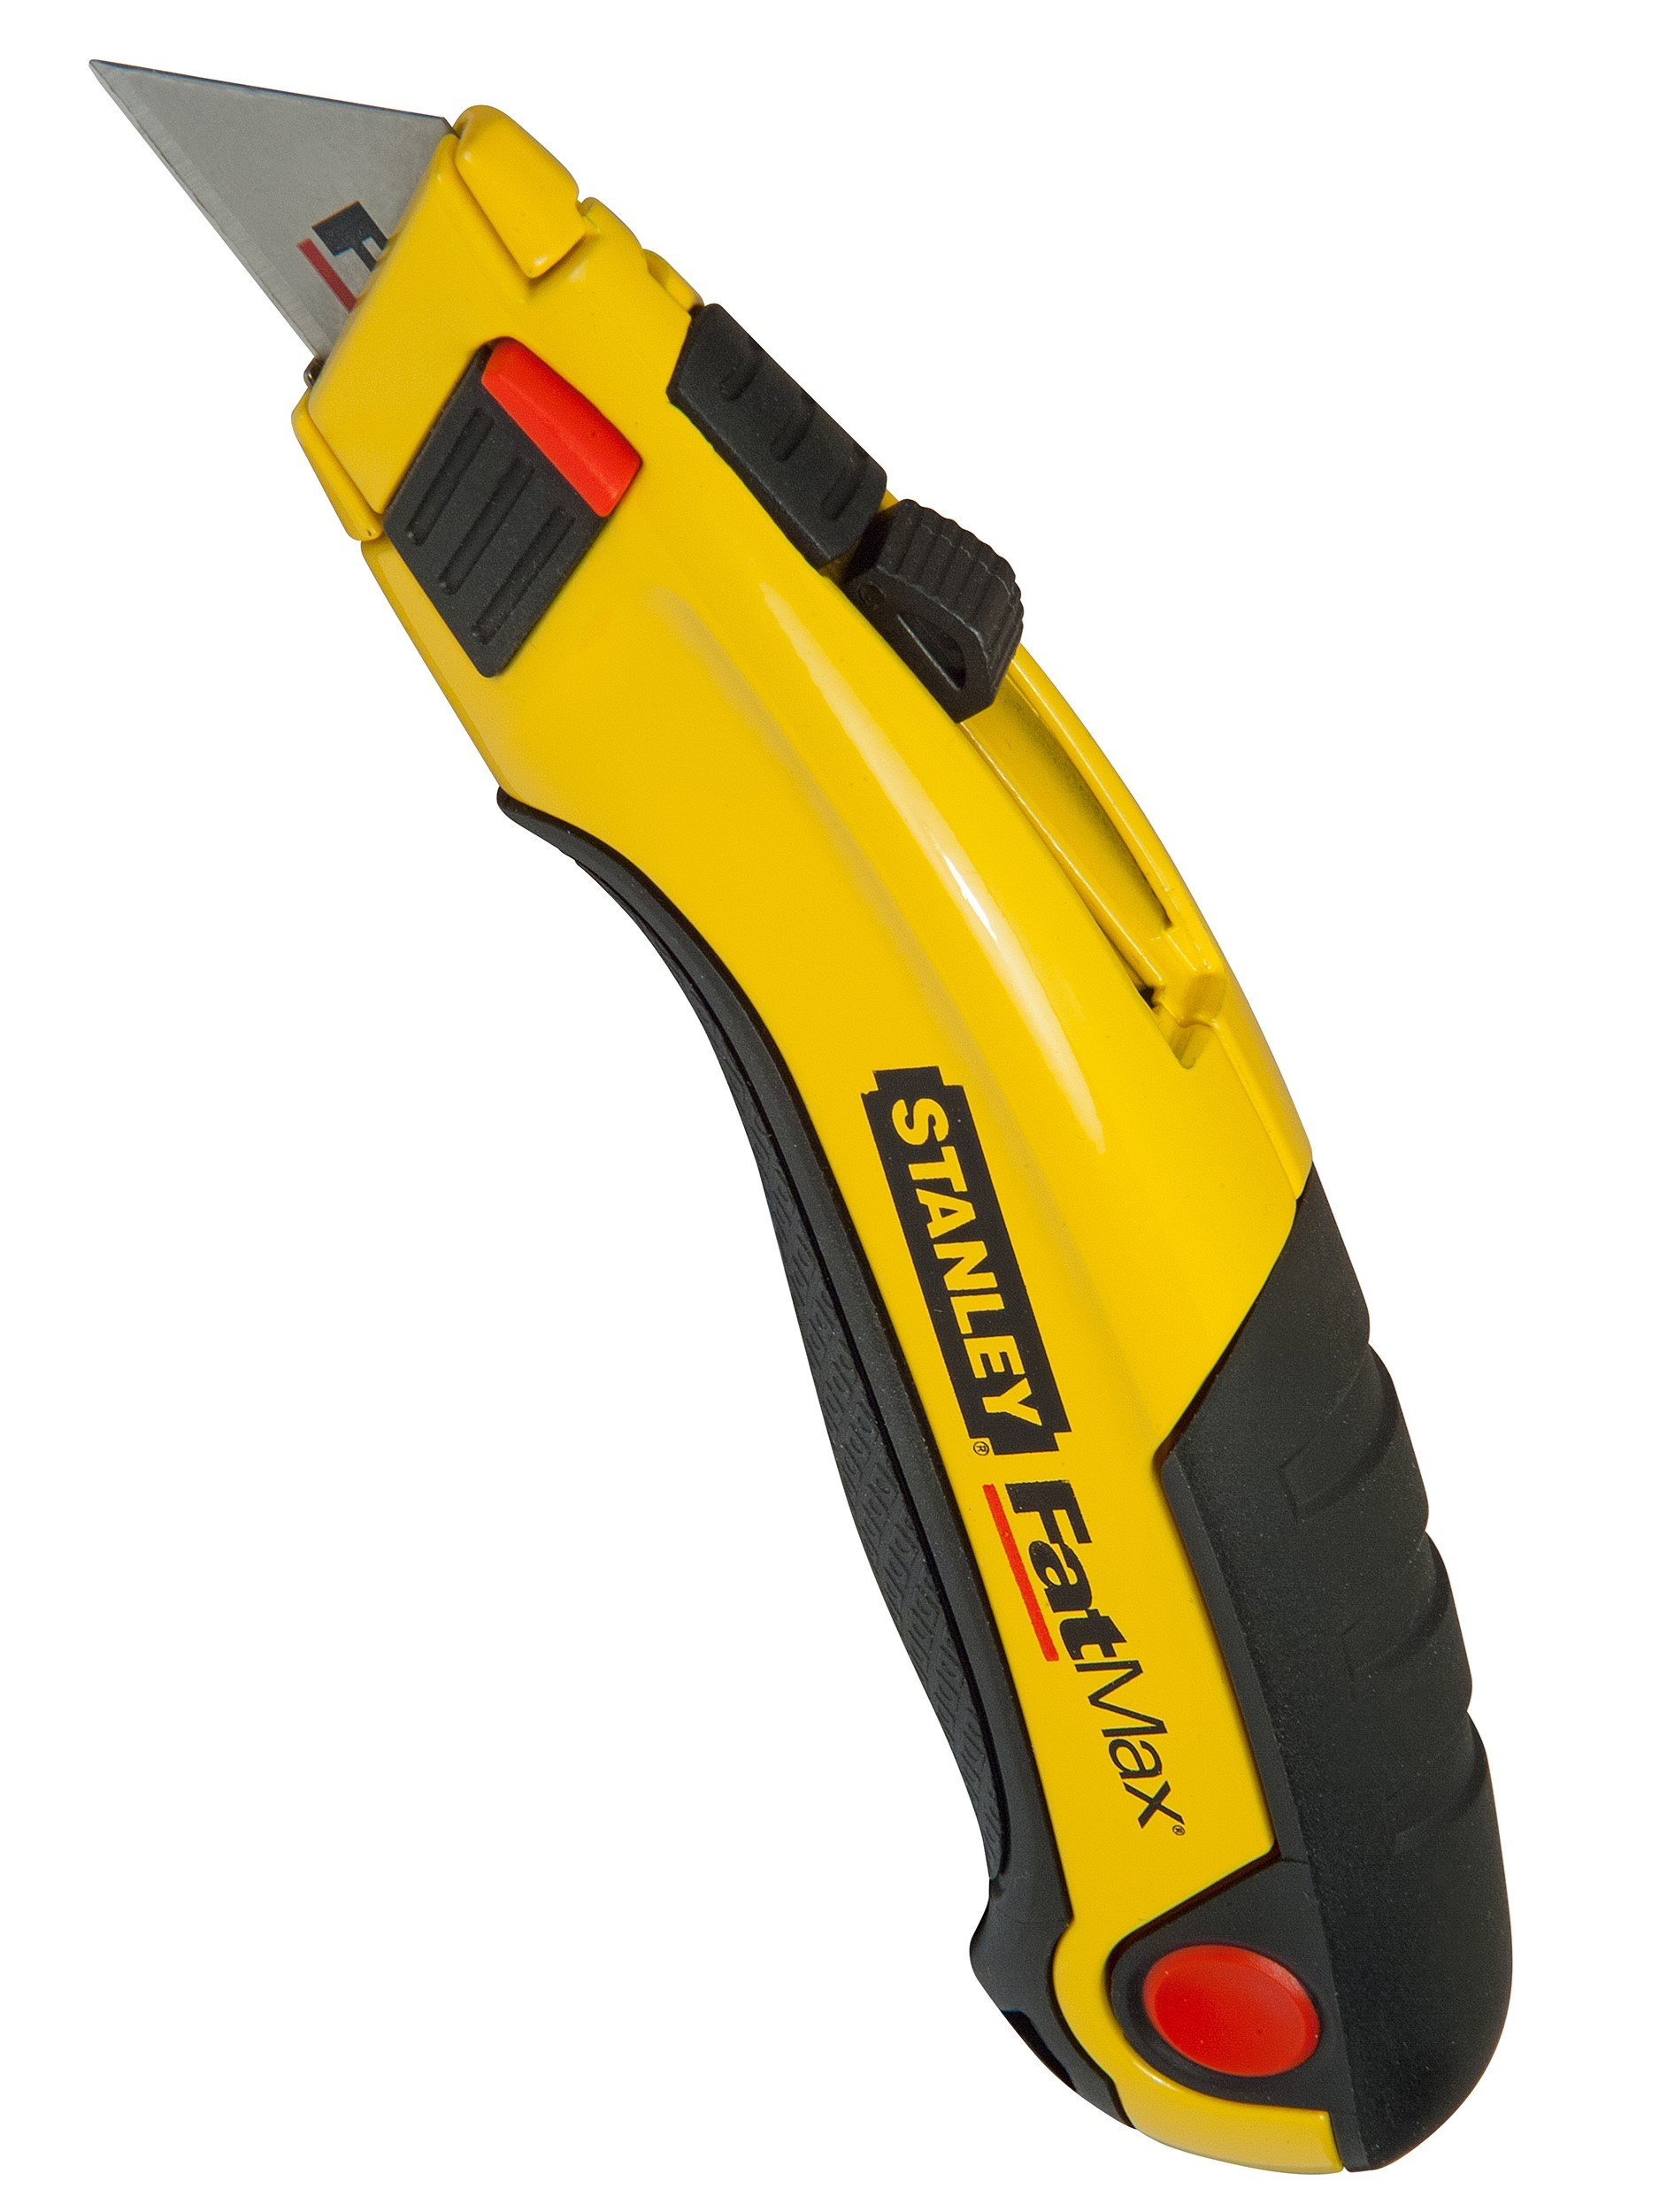 Stanley Retractable Utility Knife | Hand Saws & Blades